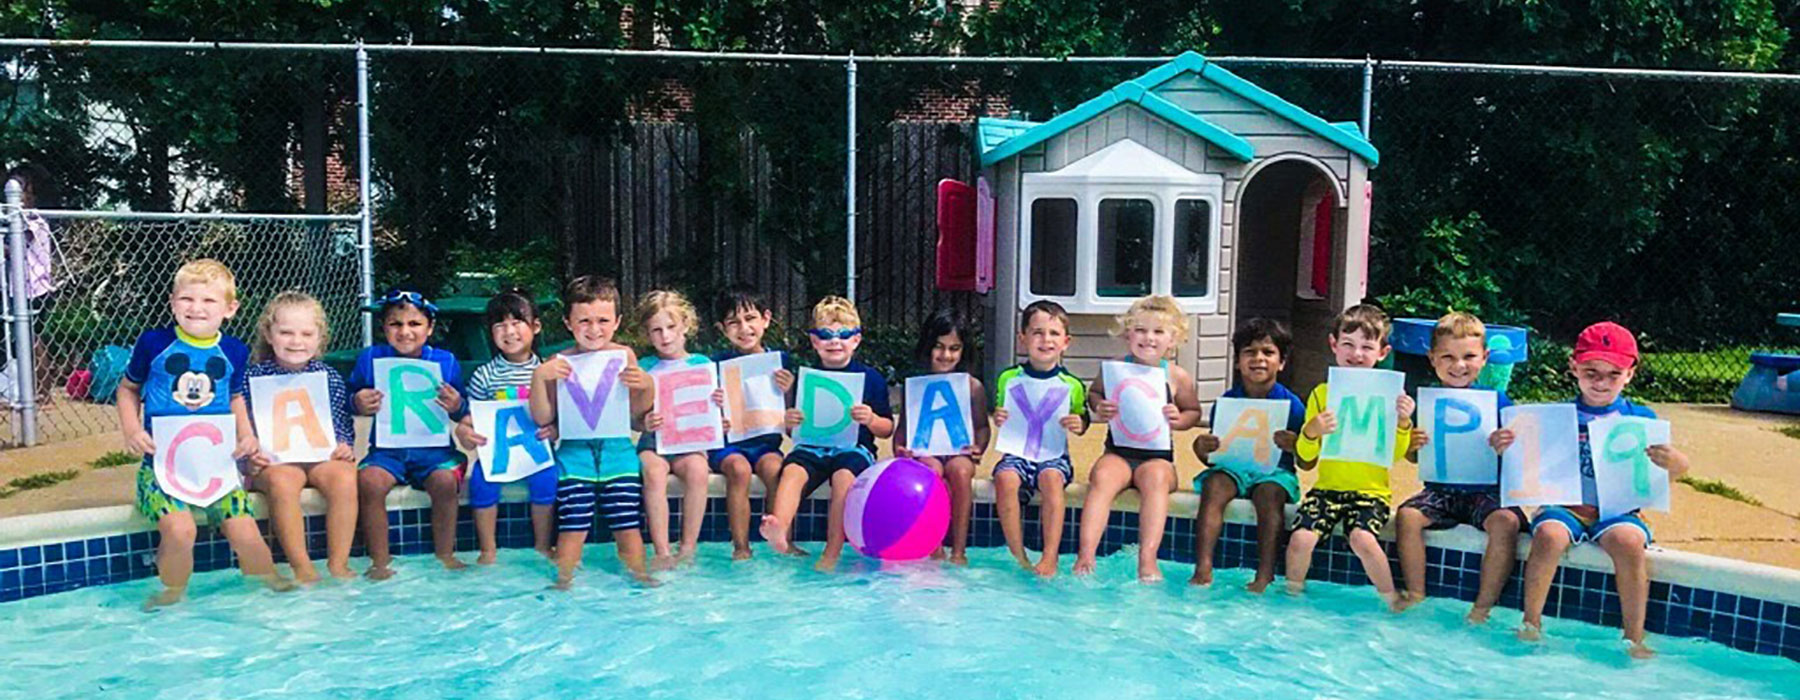 Caravel Day Camp is a Summer Camp in Delaware